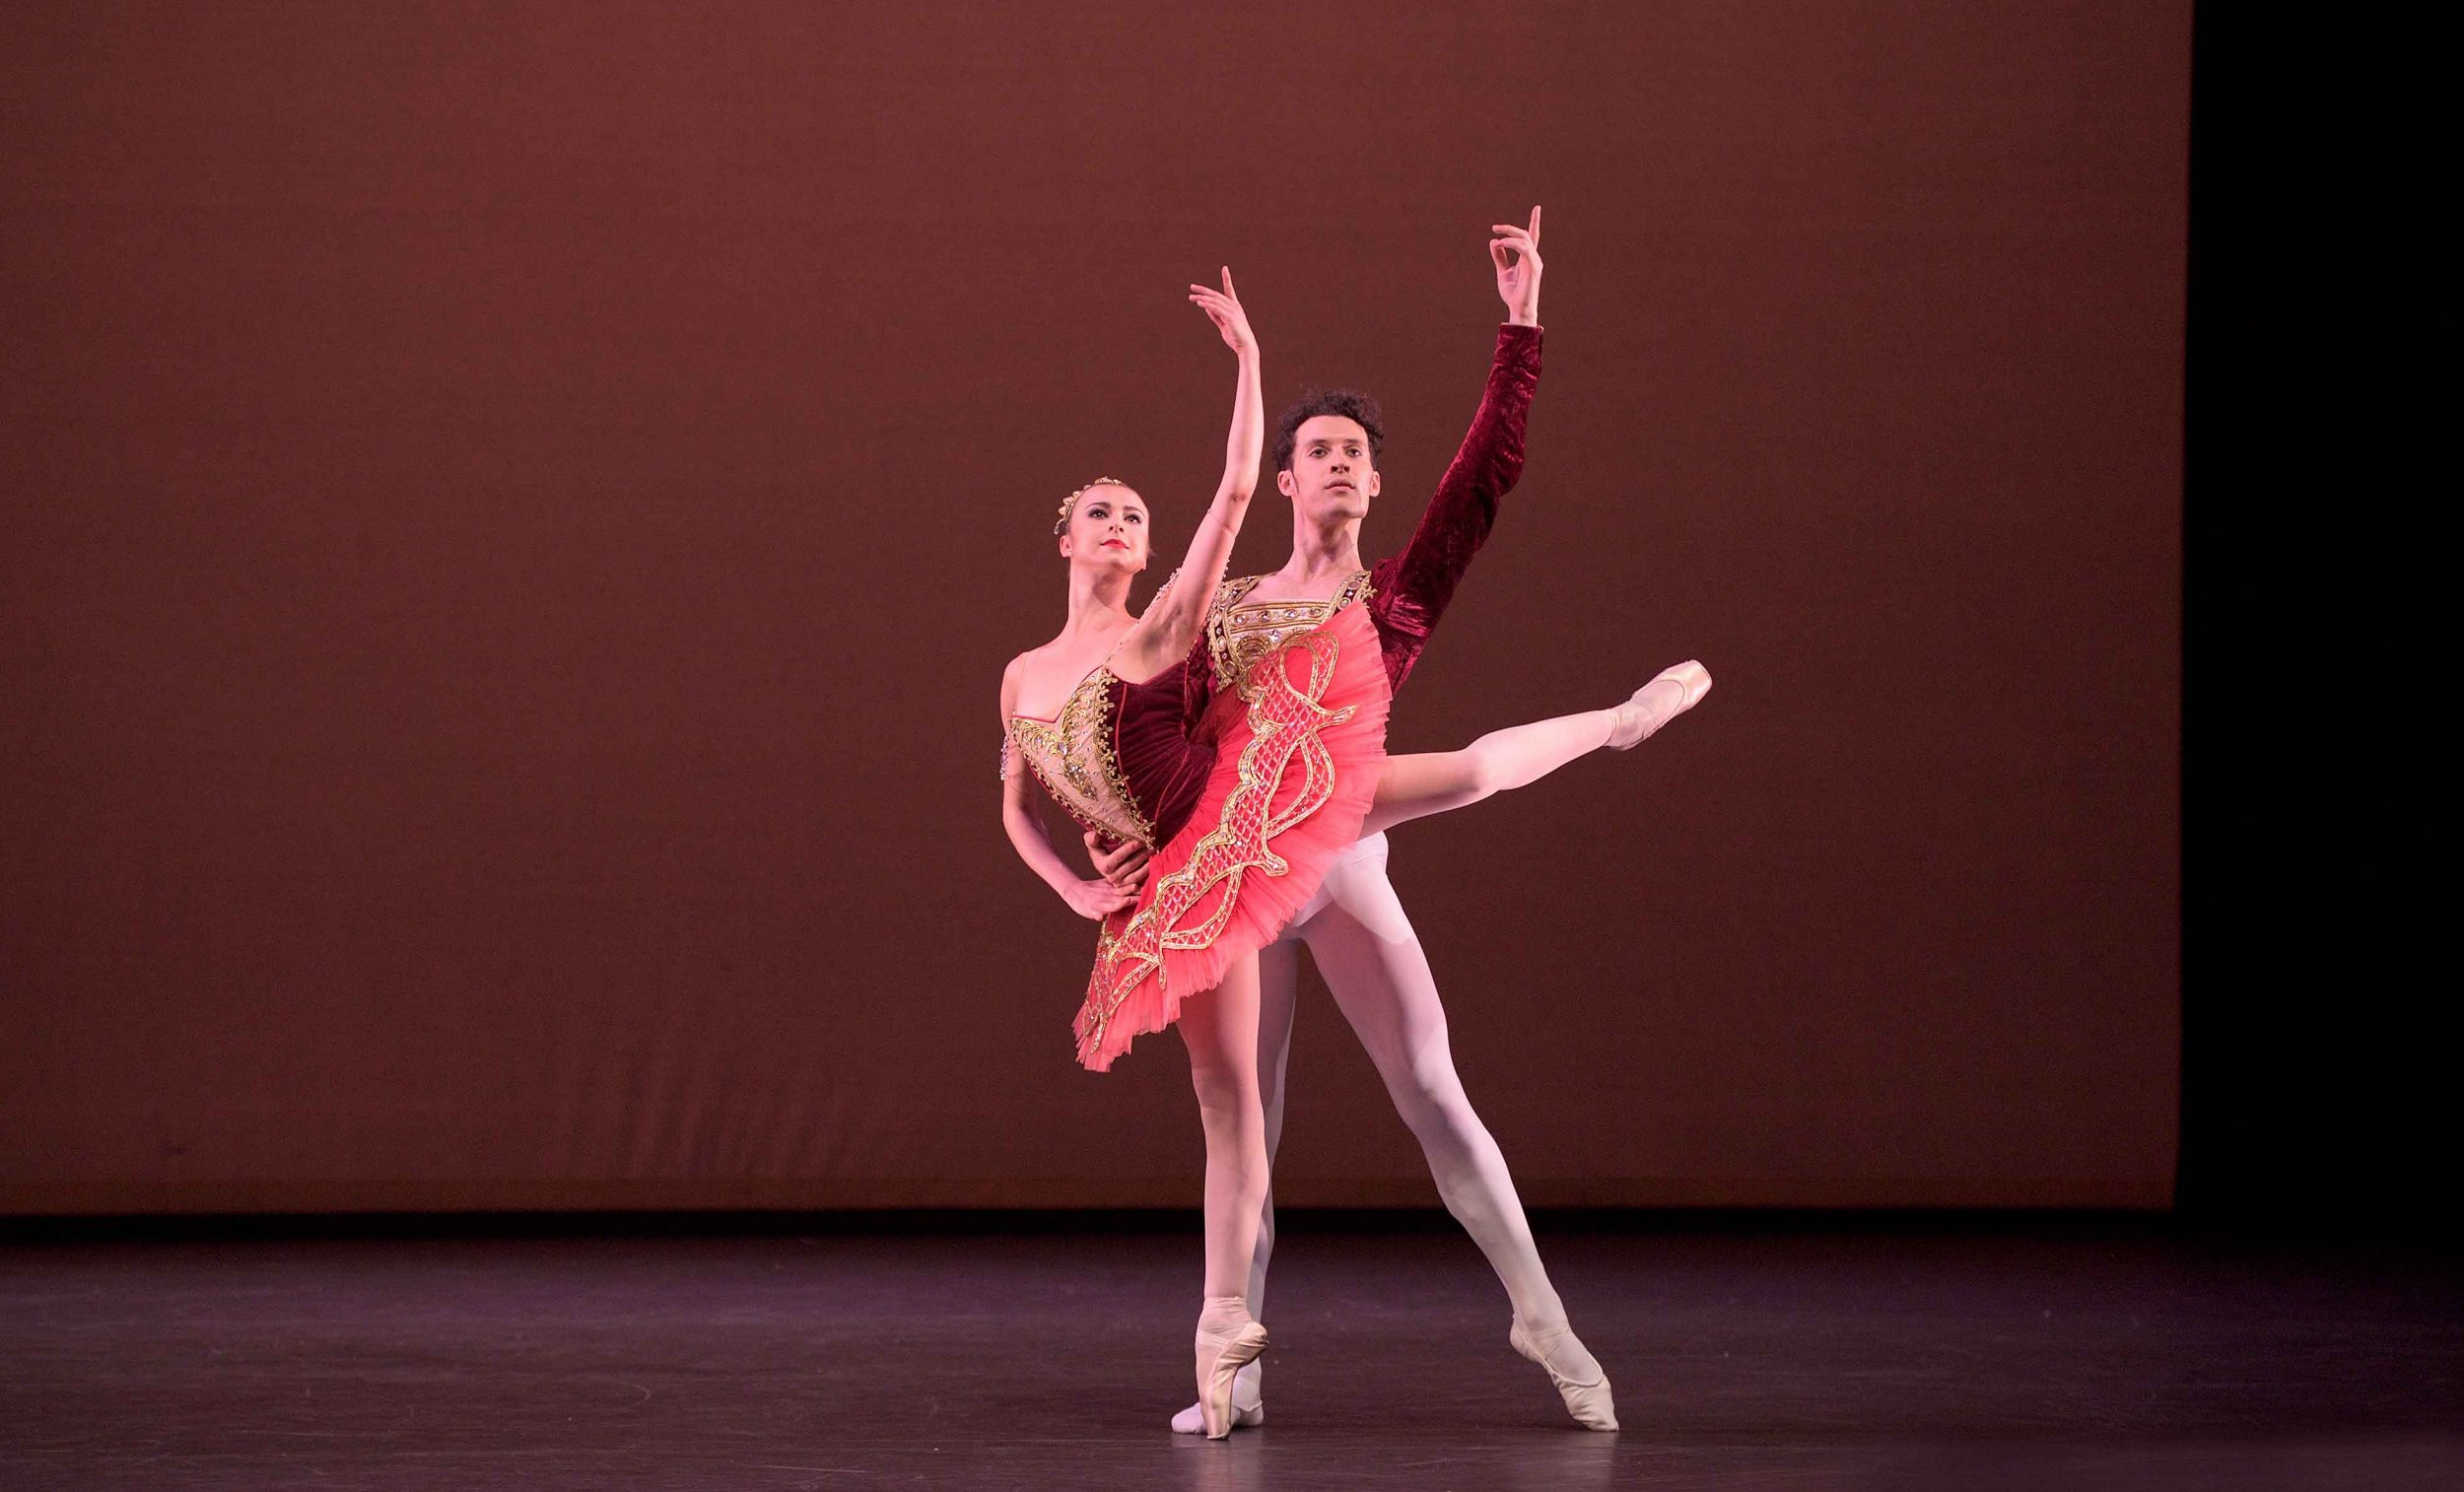 Isabelle-Brouwers-and-Emilio-Pavan-performing-Paquita-©-Laurent-Liotardo--(2)